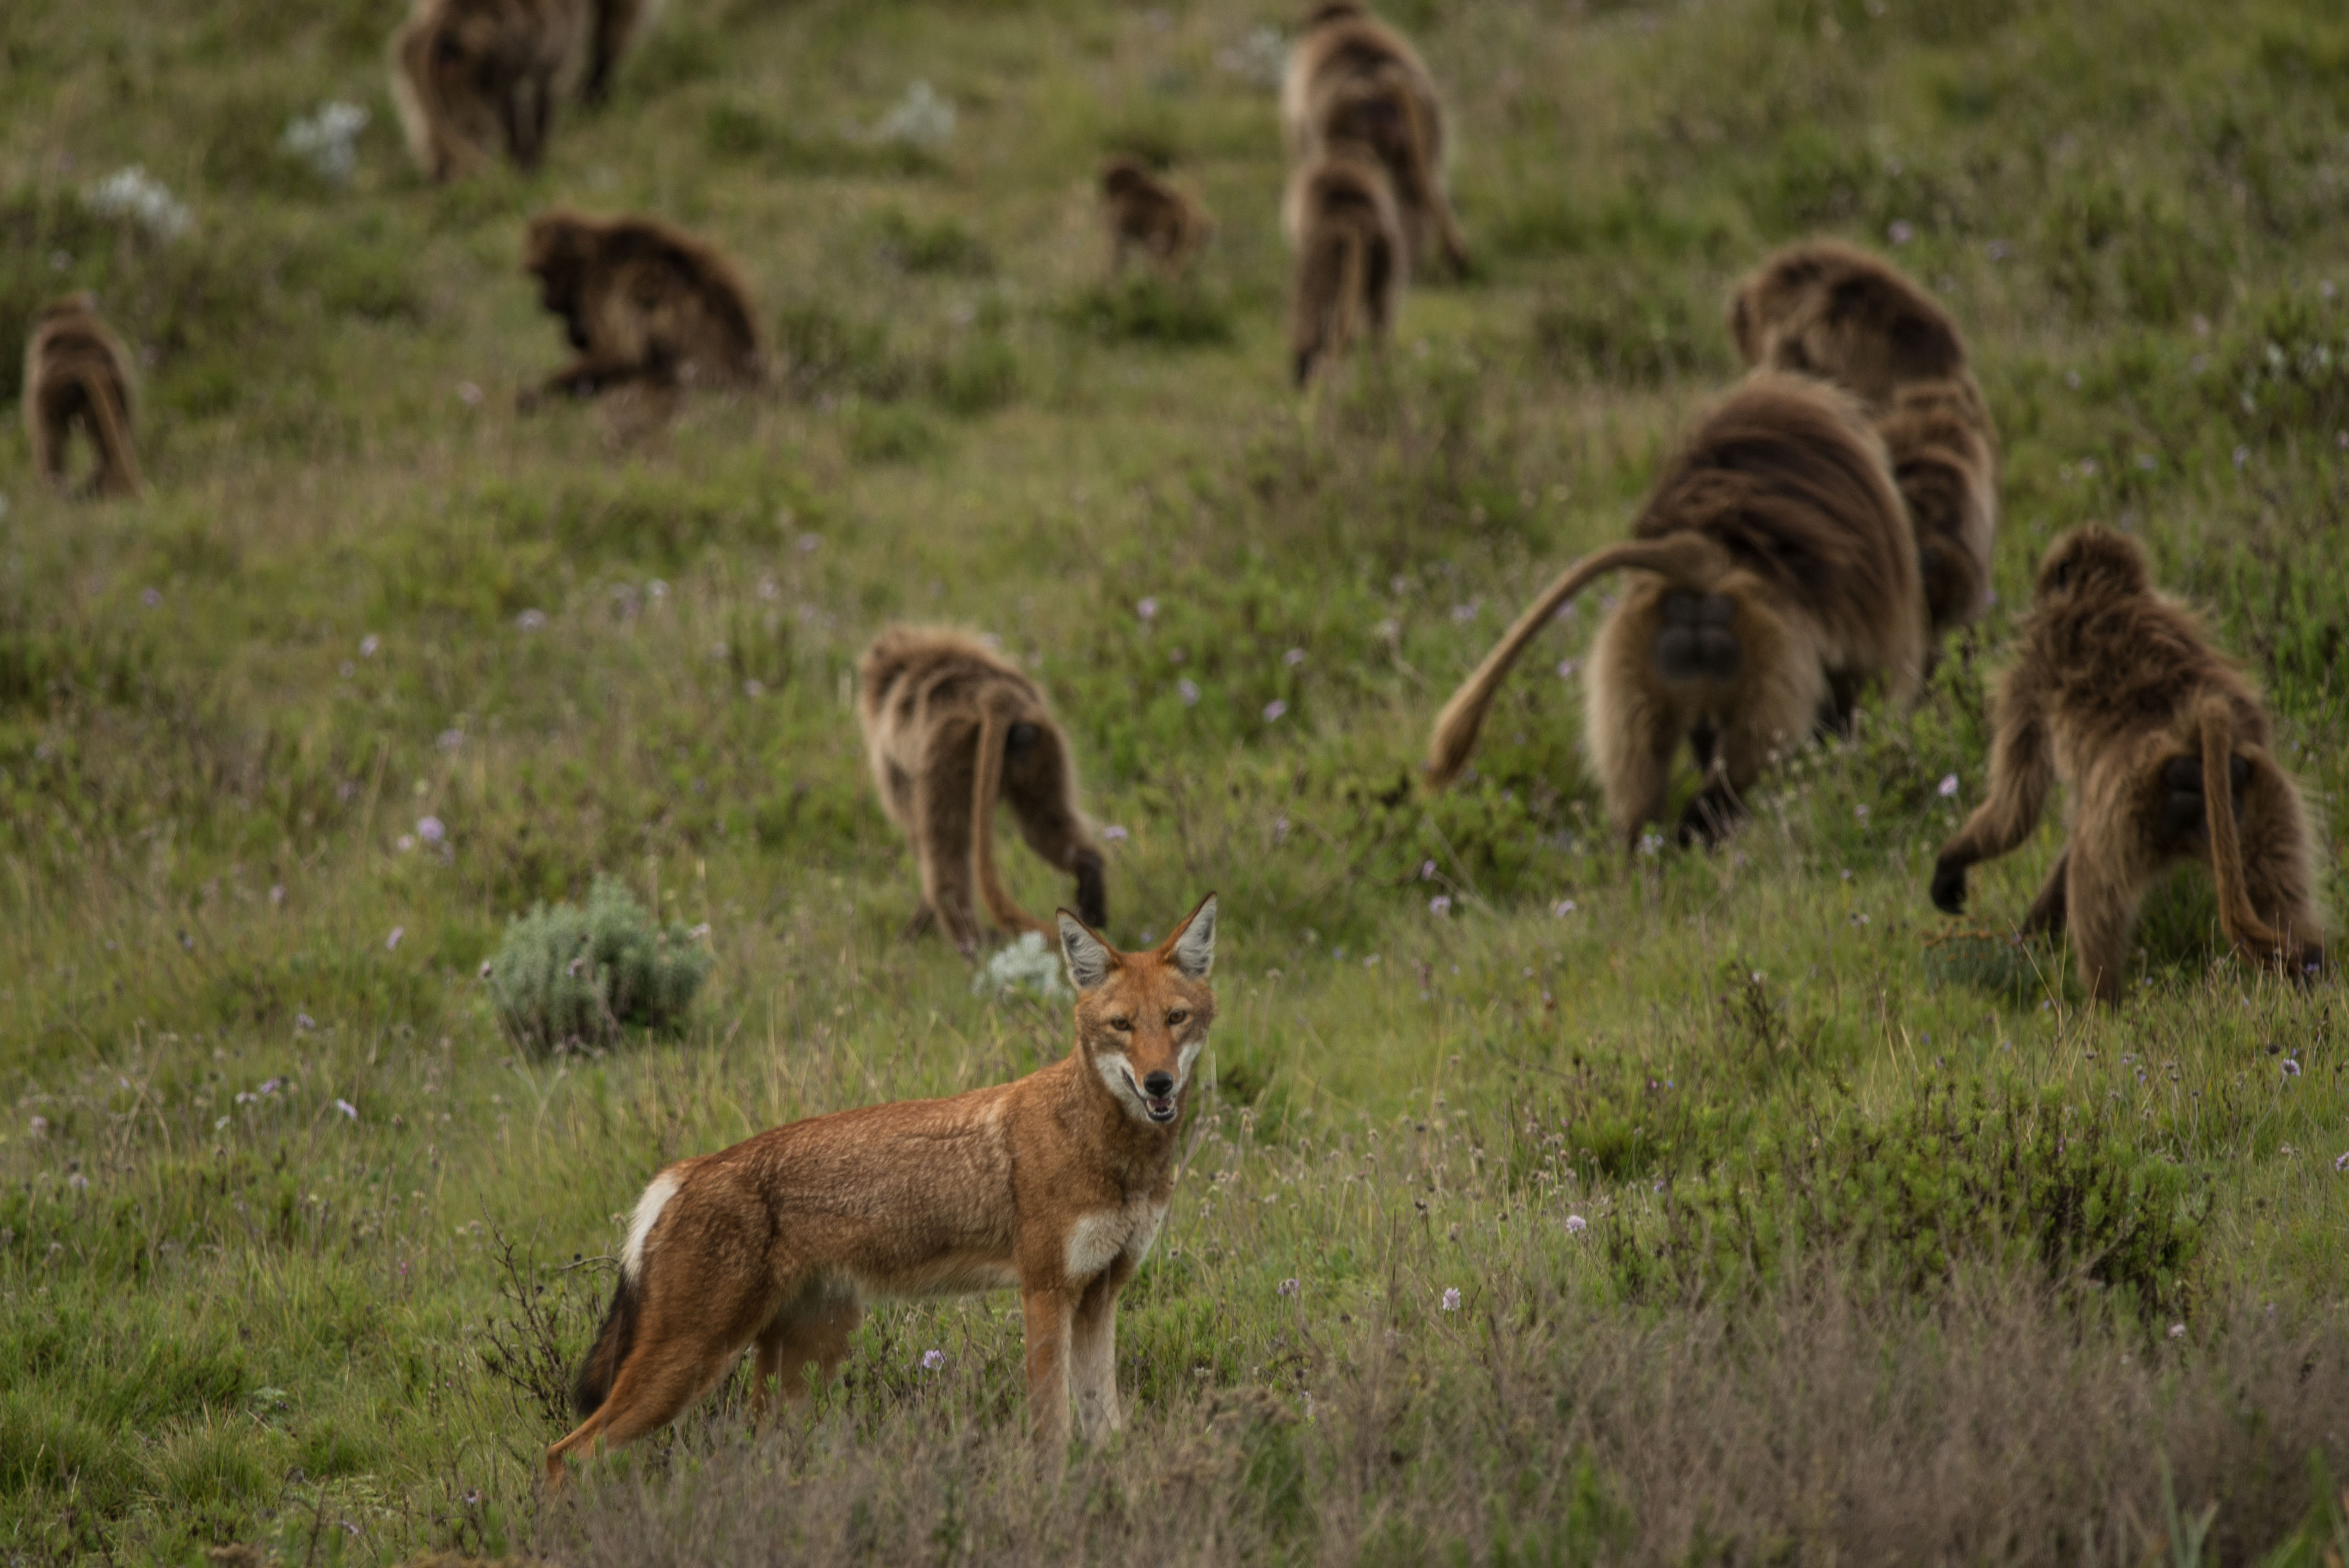 Amazing_images_show_what_looks-d309662449c8baf06eca65c5063c466f - Peaceable Kingdom: Monkeys Fraternizing with Wolves - Science and Research